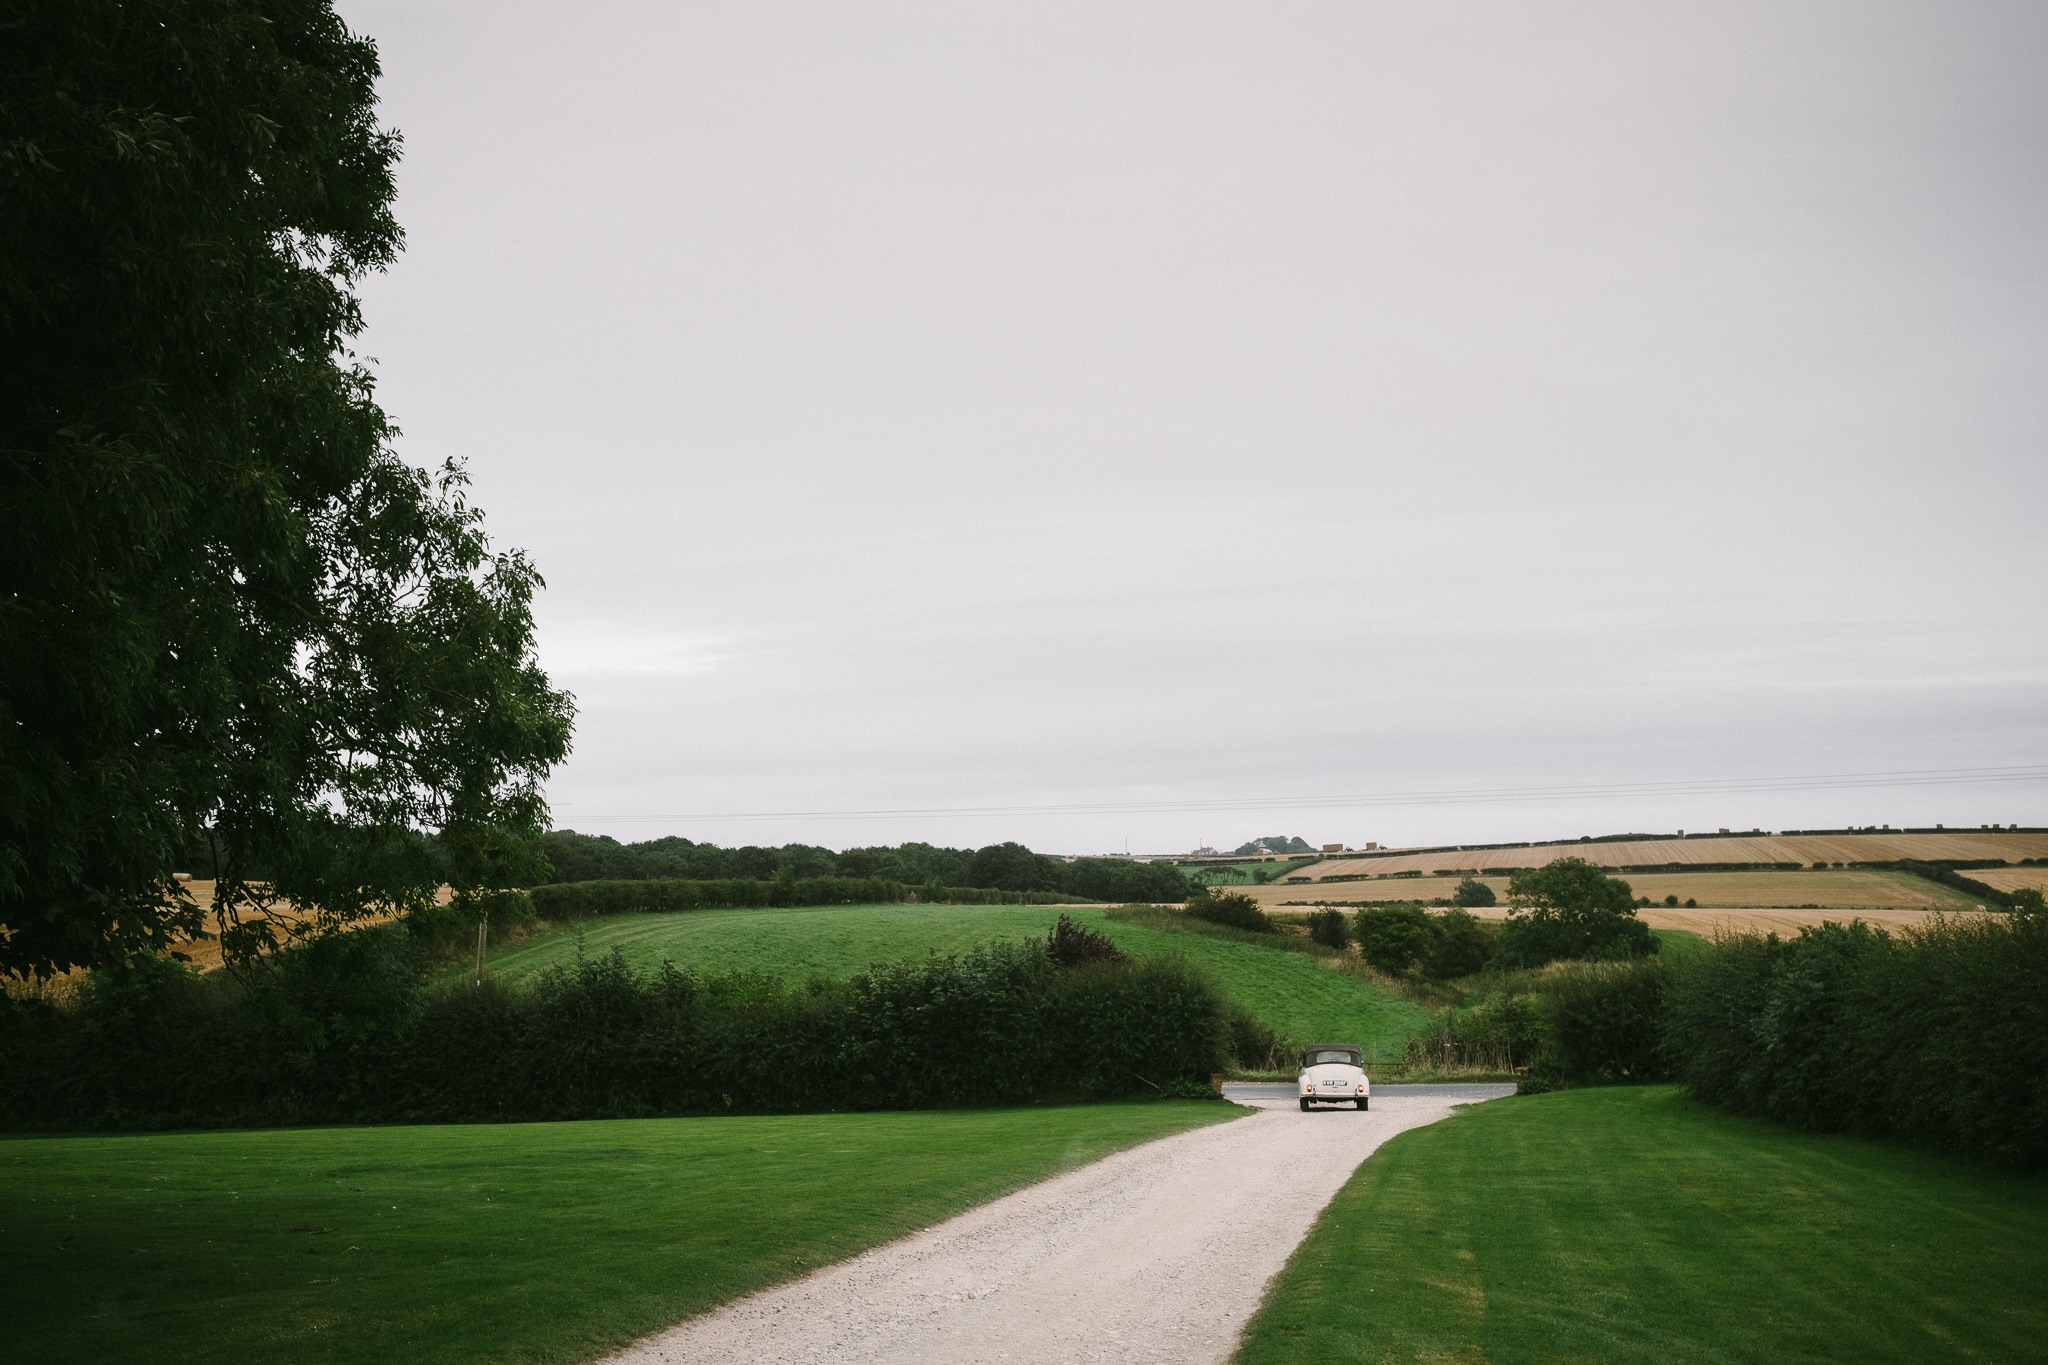 The bride drives to church with rolling Yorkshire countryside in the background